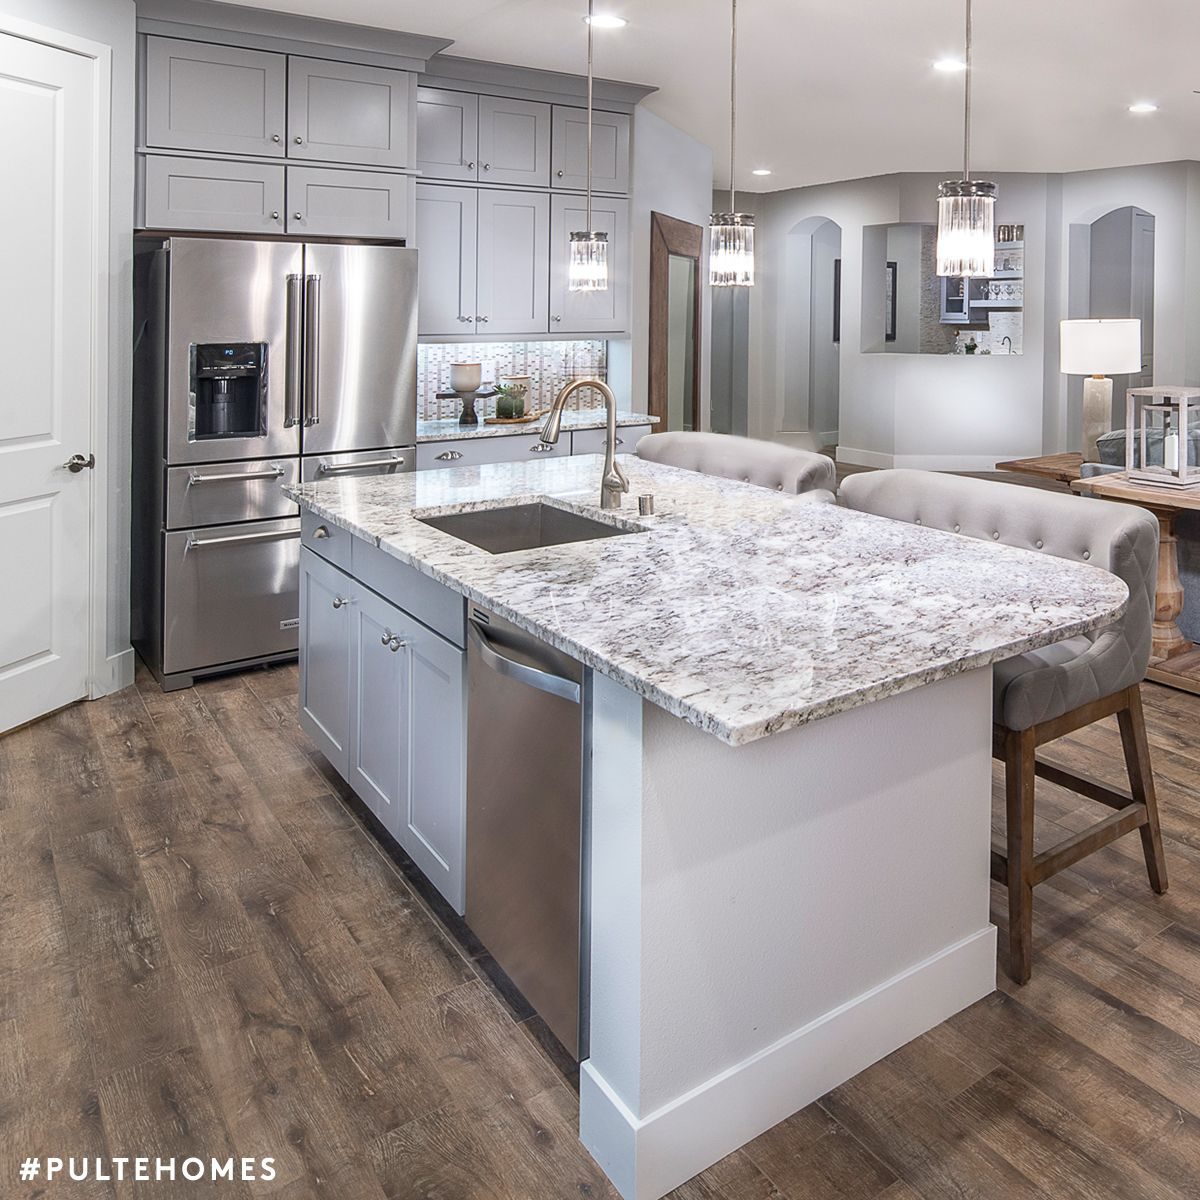 Merveilleux This Inviting Kitchen Is The Epitome Of Refined Elegance In Chic, Soothing  Grays. Pulte Homes